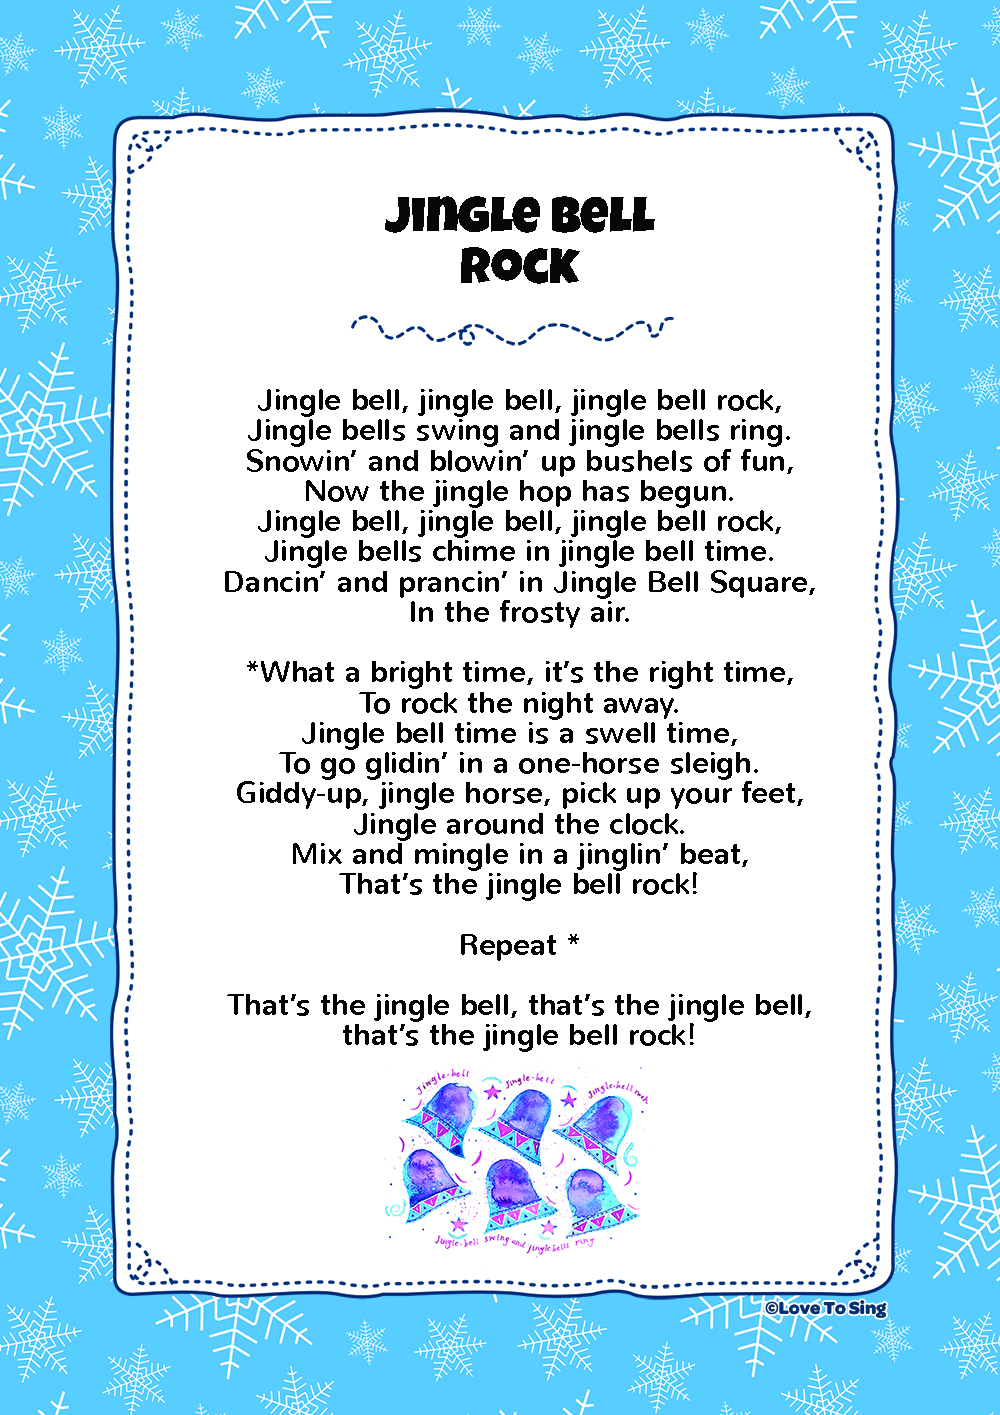 graphic about Jingle Bells Lyrics Printable named Jingle Bell Rock Children Movie Track with Absolutely free Lyrics